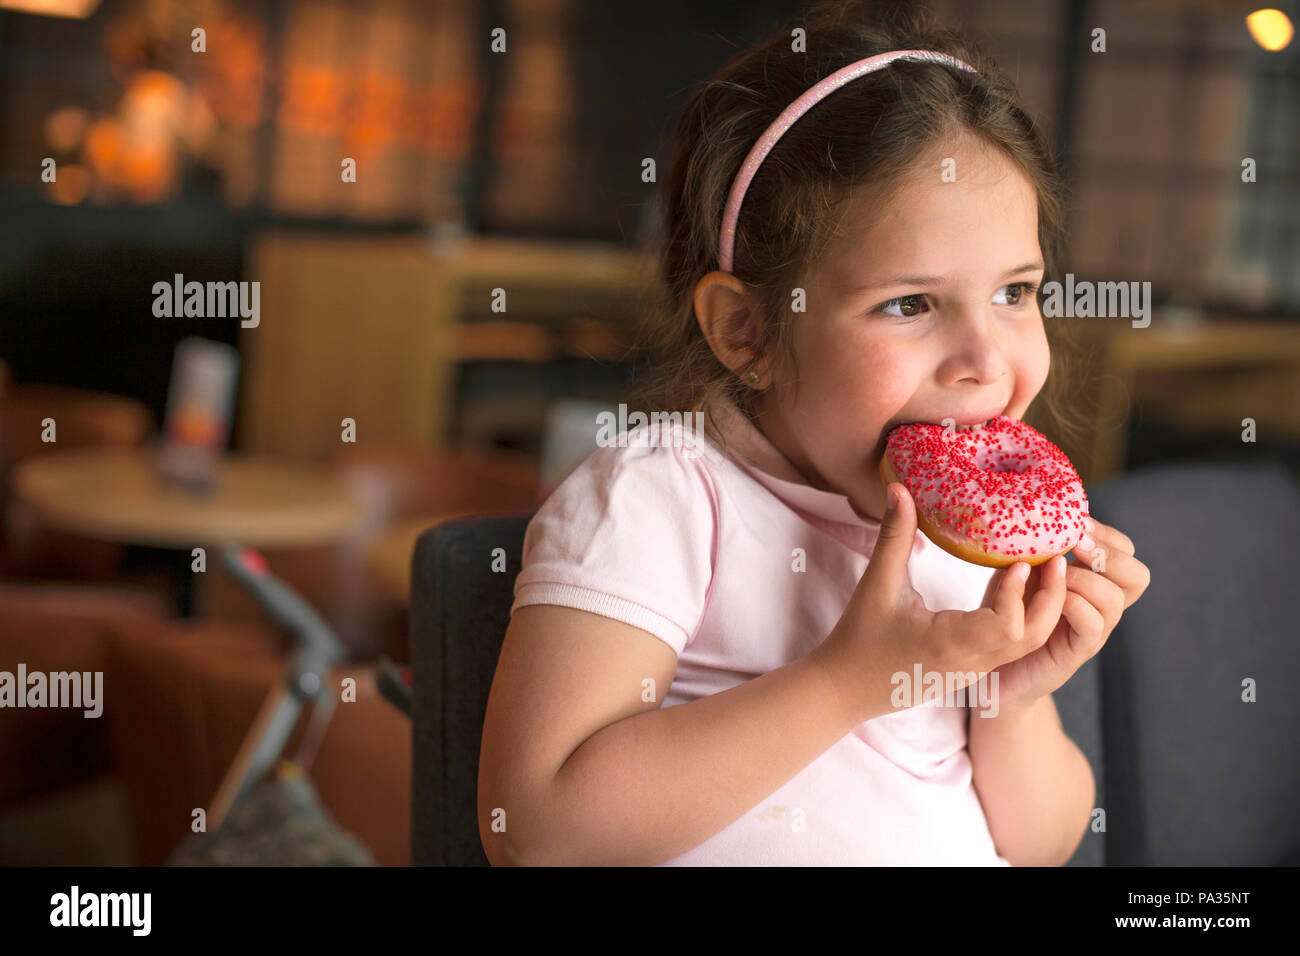 happy girl eating pastry at a cafe. Harmful sweet food. Trends in food. Copy space - Stock Image